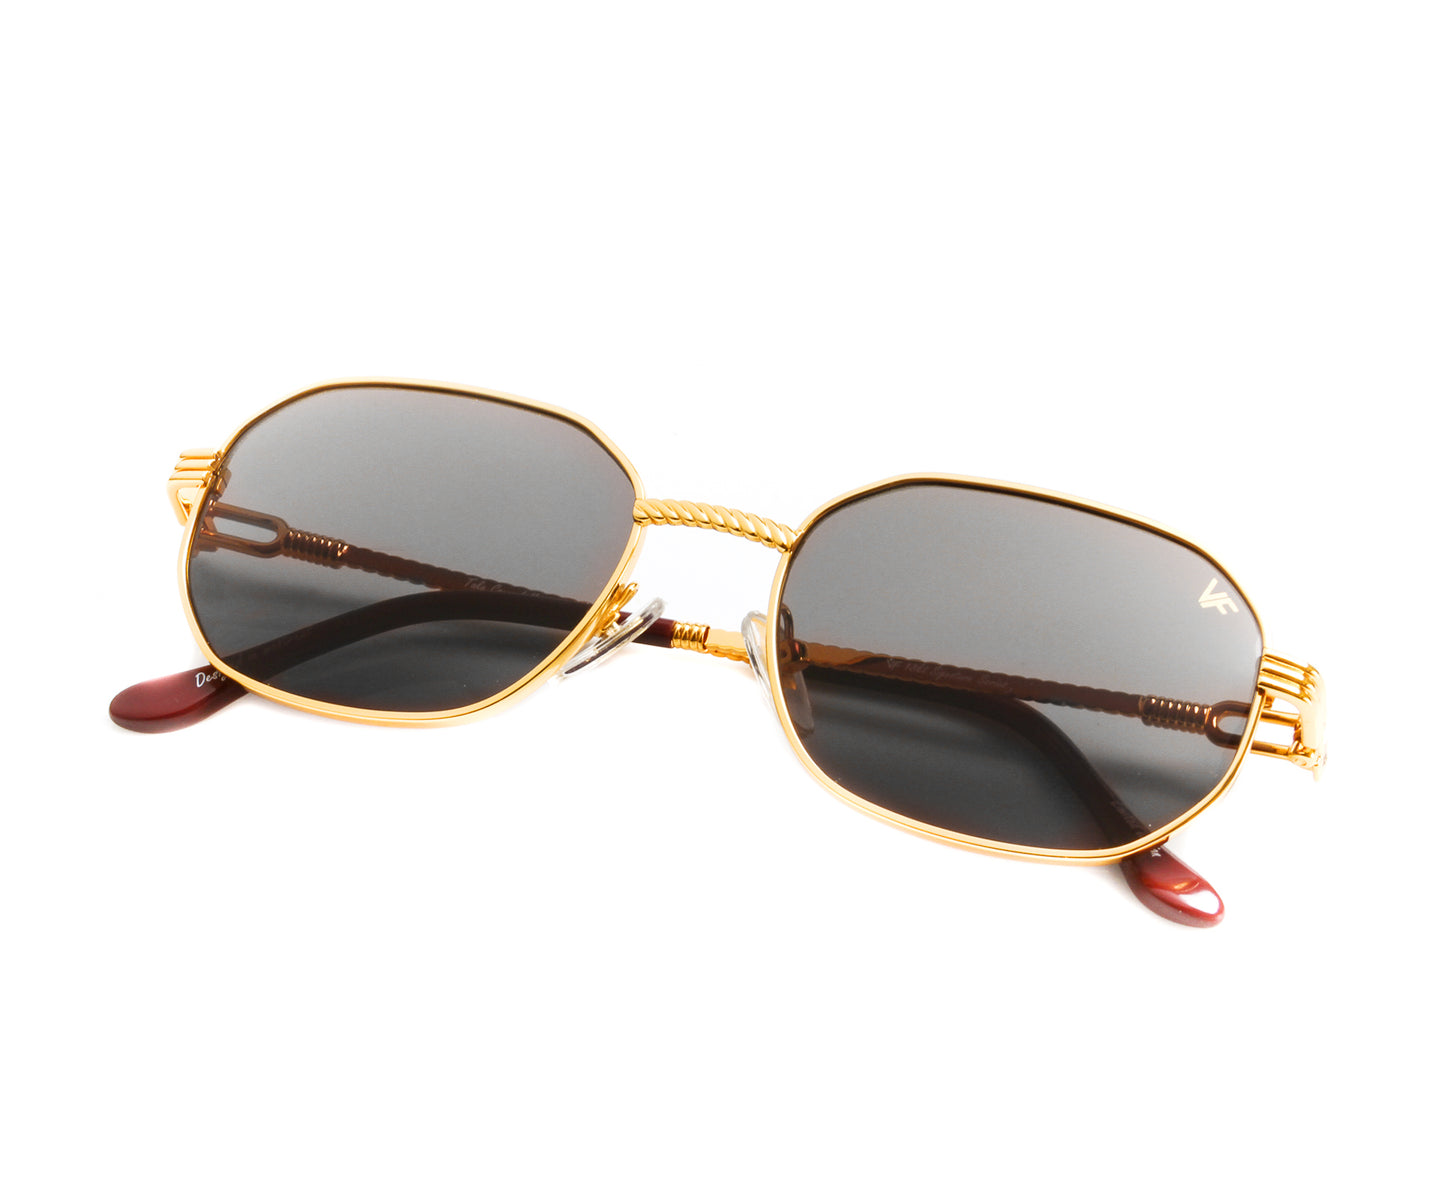 VF Hustler 18KT Gold (Black) Thumbnail, VF by Vintage Frames , glasses frames, eyeglasses online, eyeglass frames, mens glasses, womens glasses, buy glasses online, designer eyeglasses, vintage sunglasses, retro sunglasses, vintage glasses, sunglass, eyeglass, glasses, lens, vintage frames company, vf